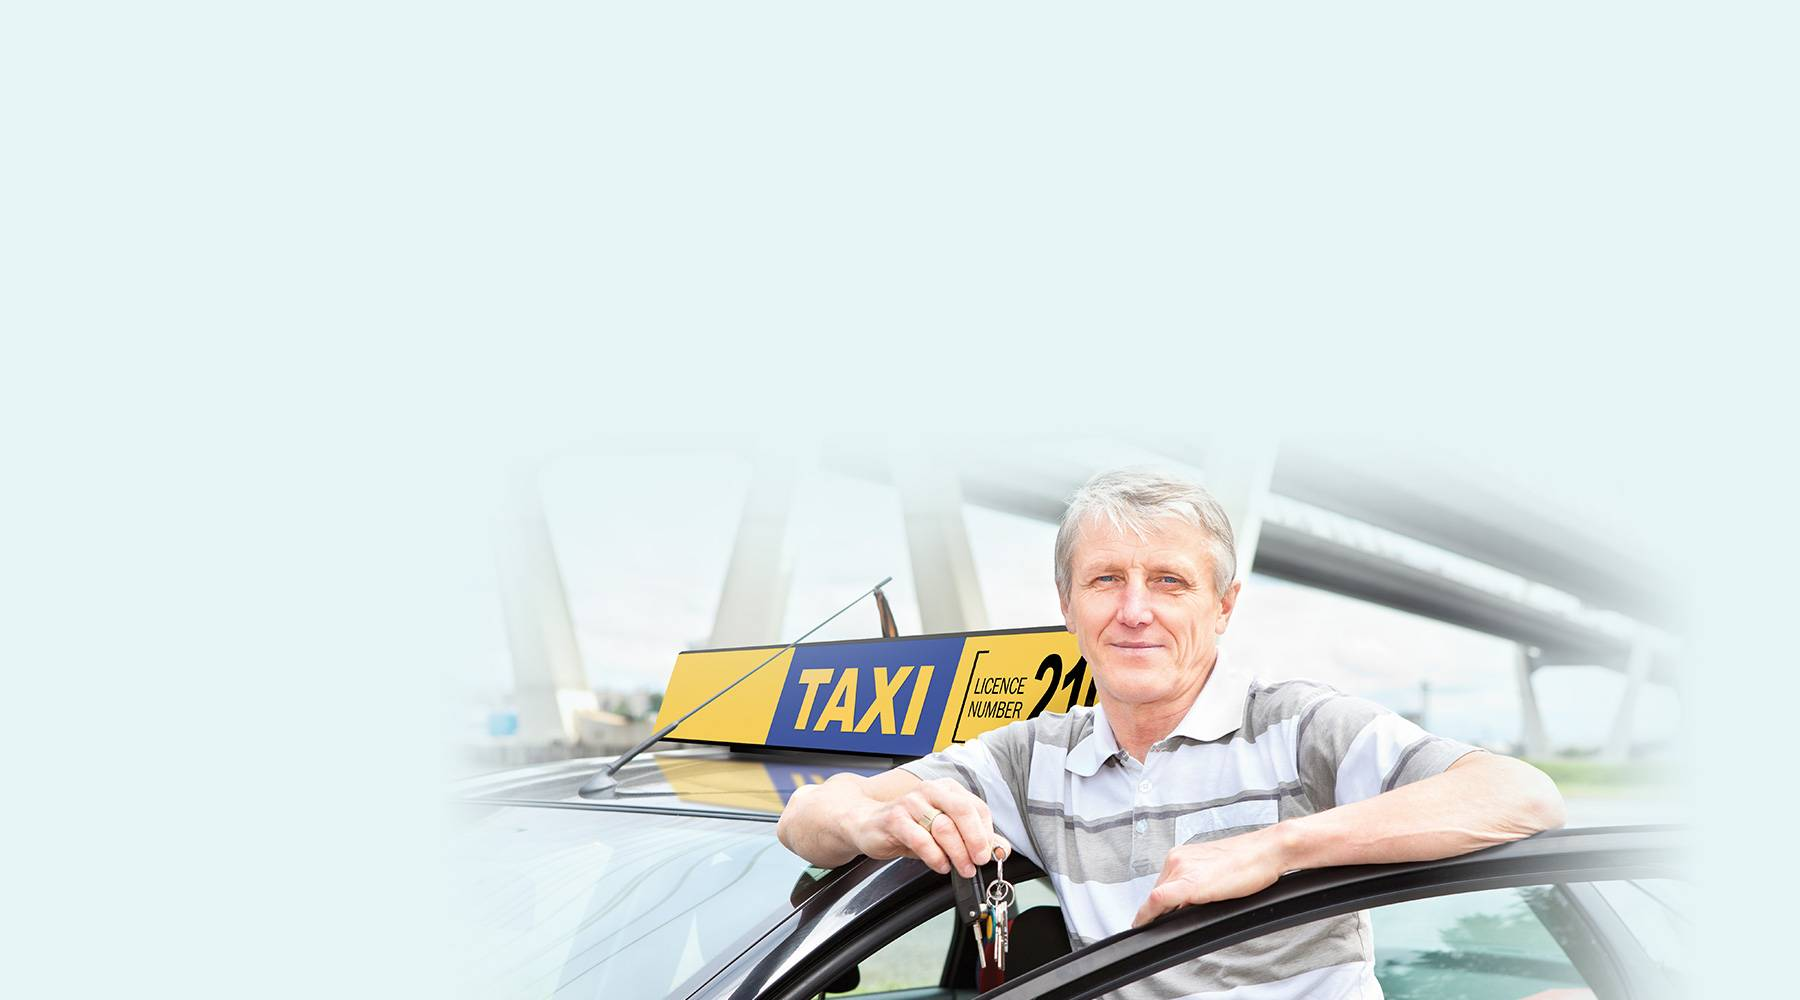 taxi driver holding keys allianz taxi insurance